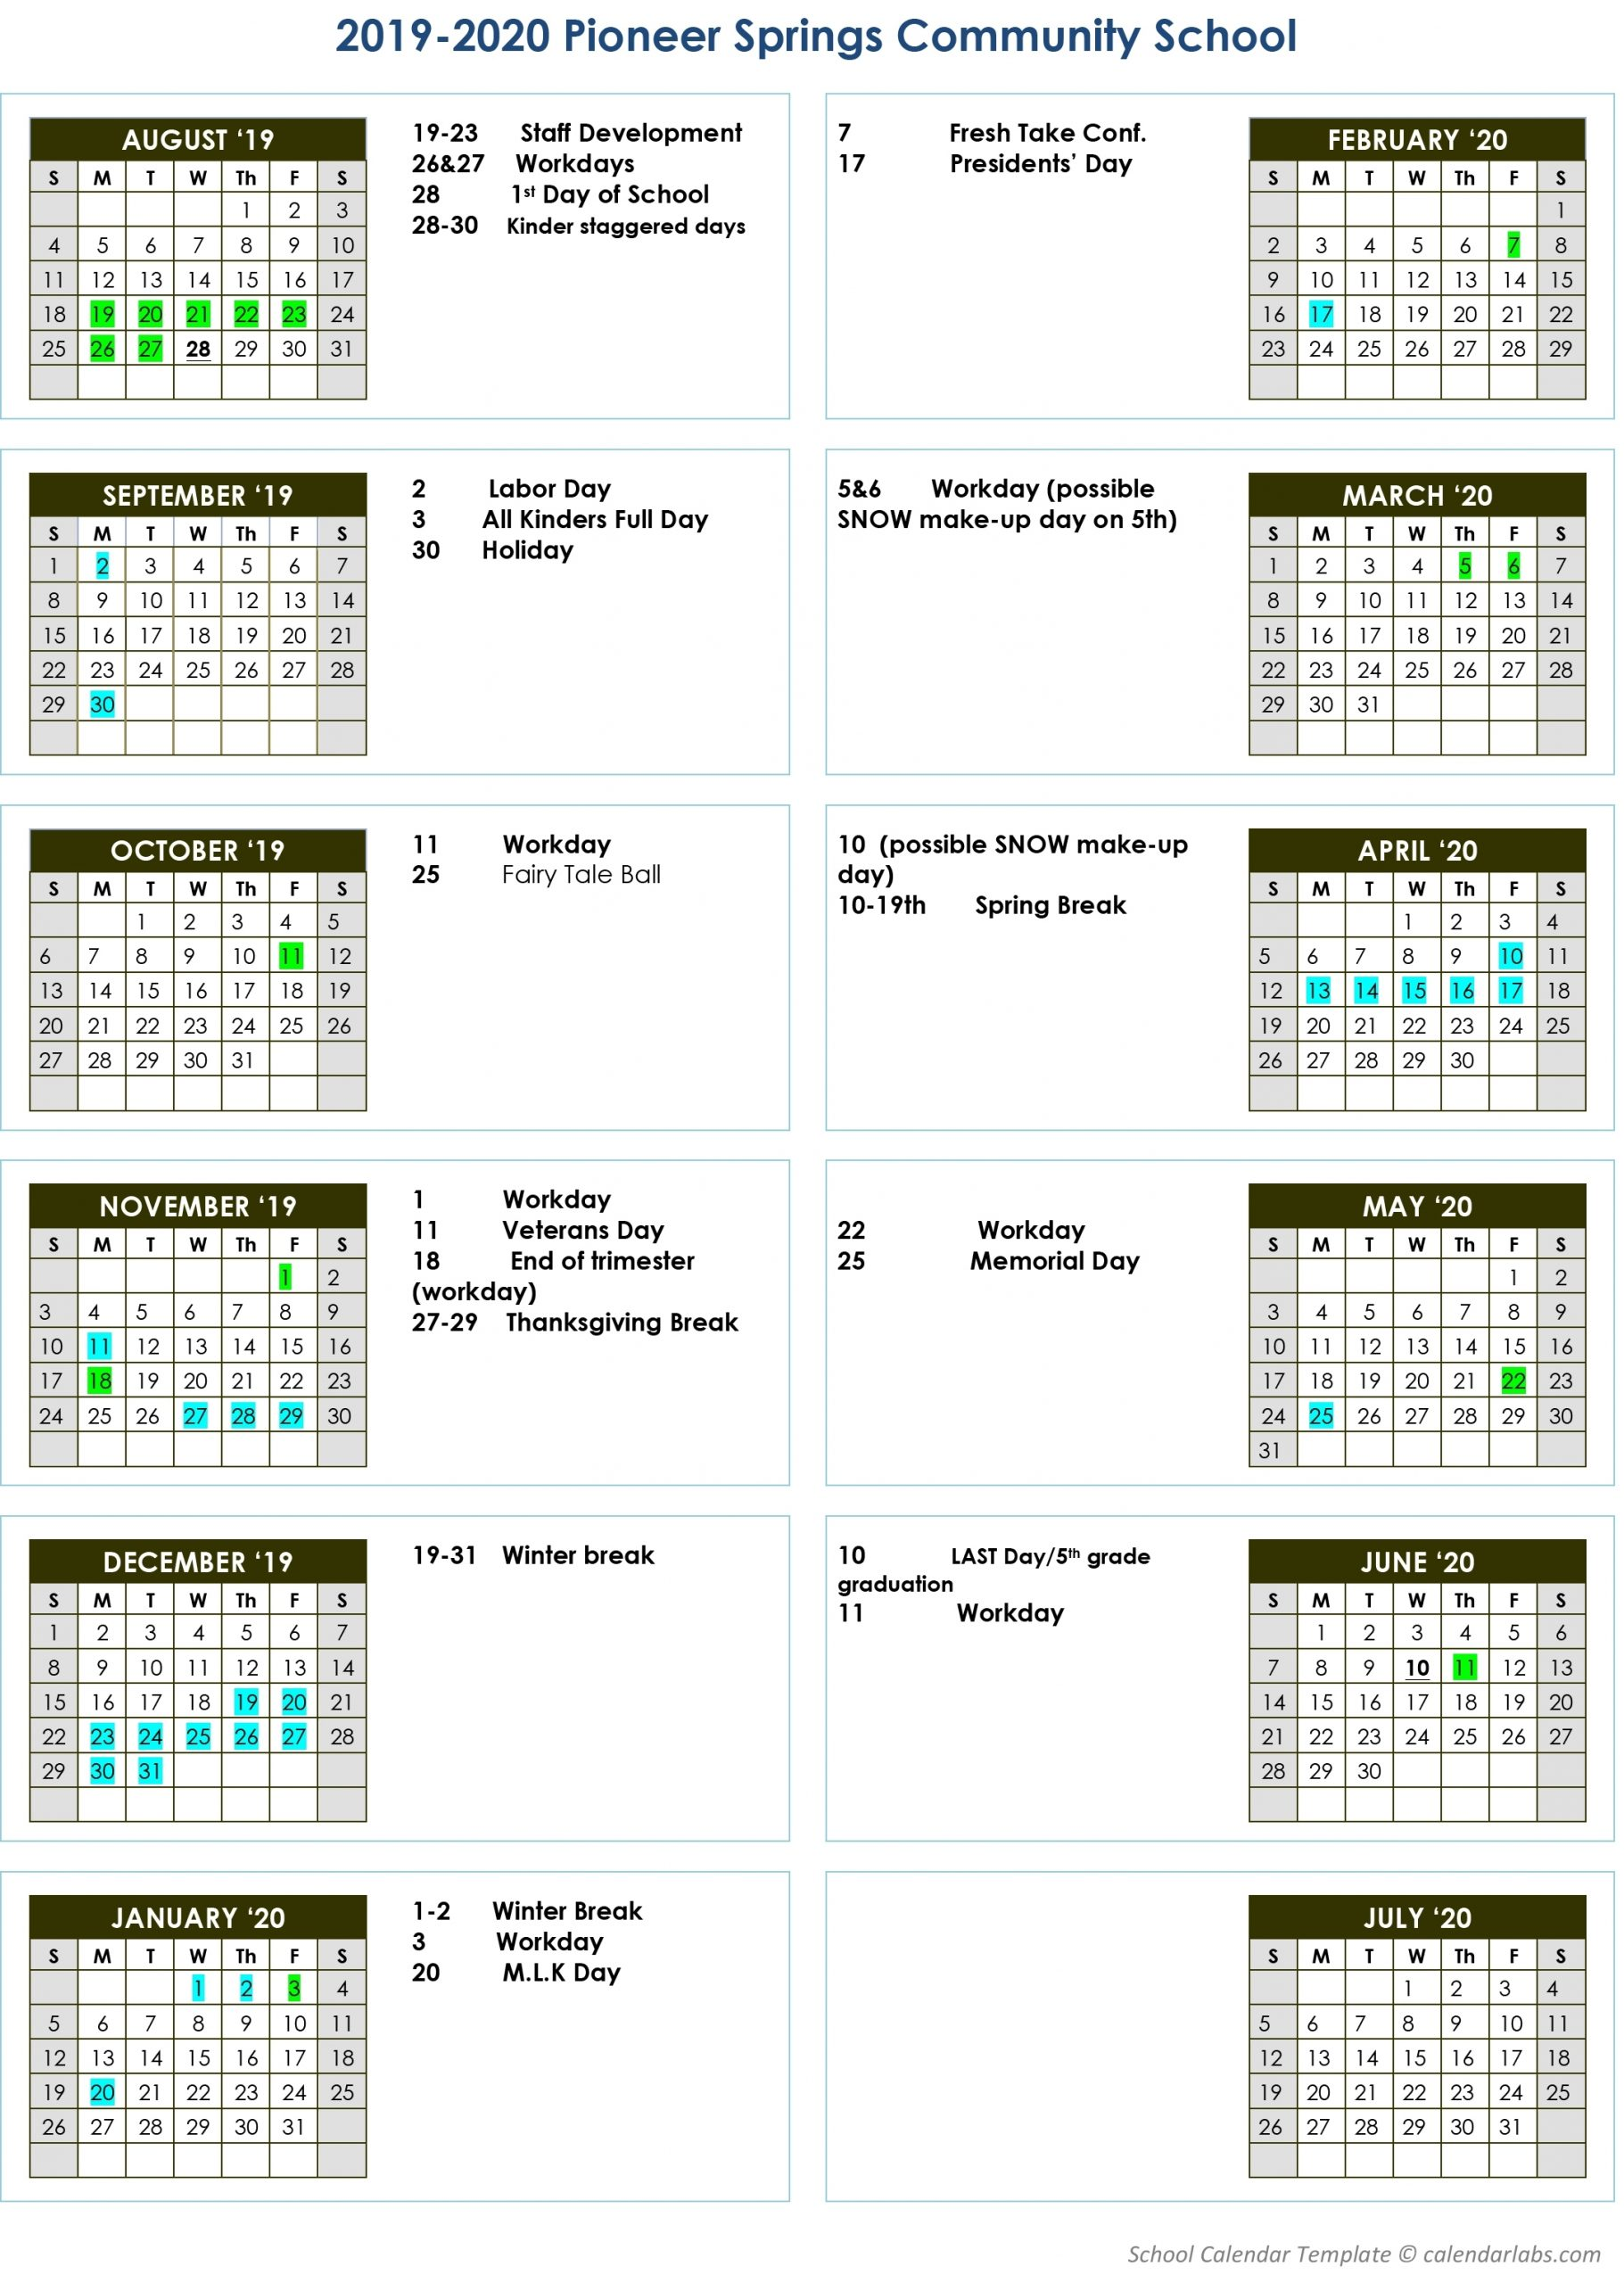 Academic Calendar - Pioneer Springs Community School Inc